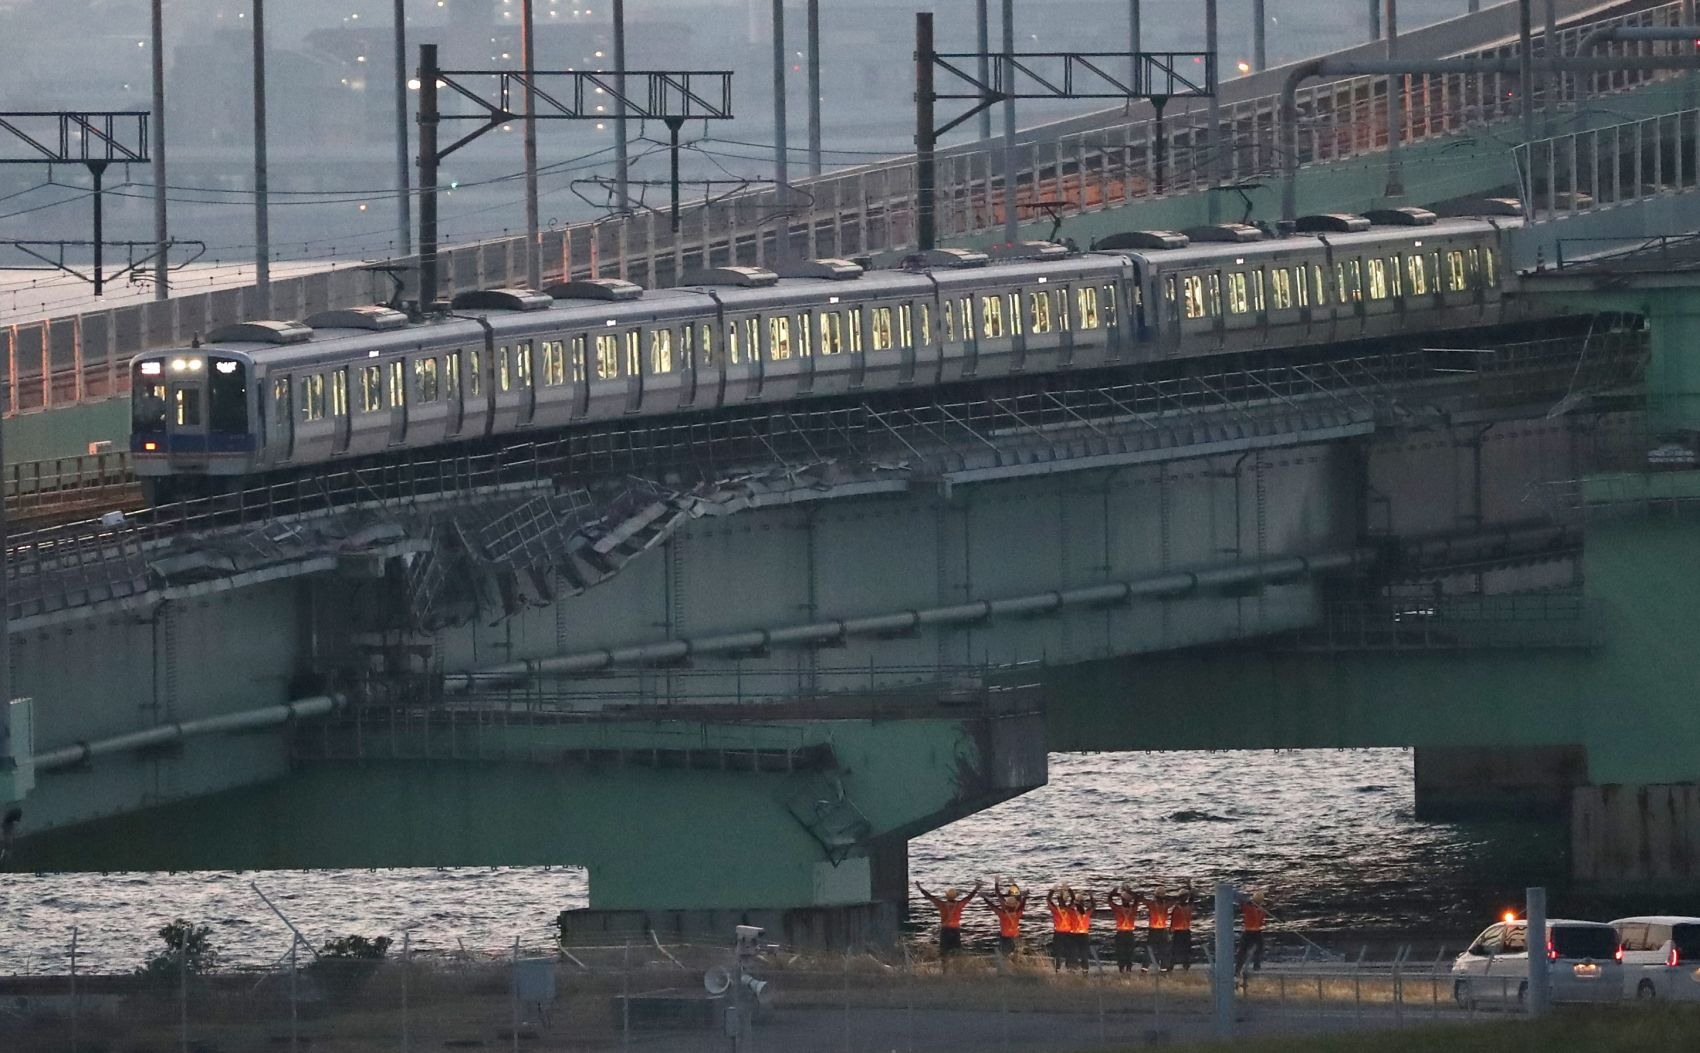 Disasters' Aftermath: Japan's Infrastructure Recovers, but Tourism Still Suffers